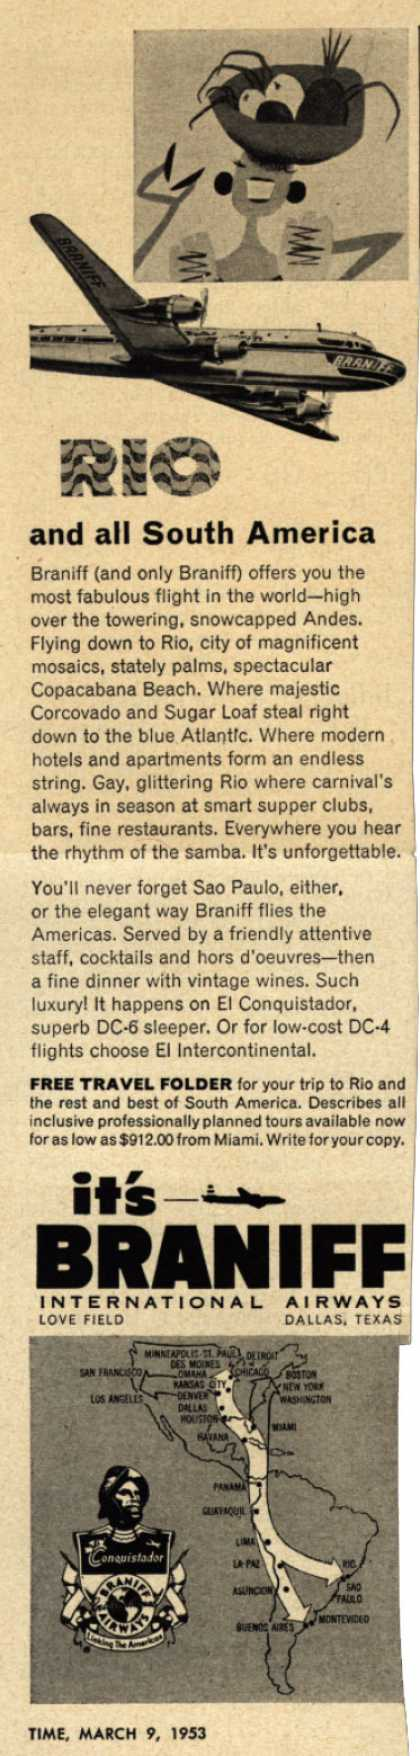 Braniff International Airway's South America – Rio and all South America (1953)